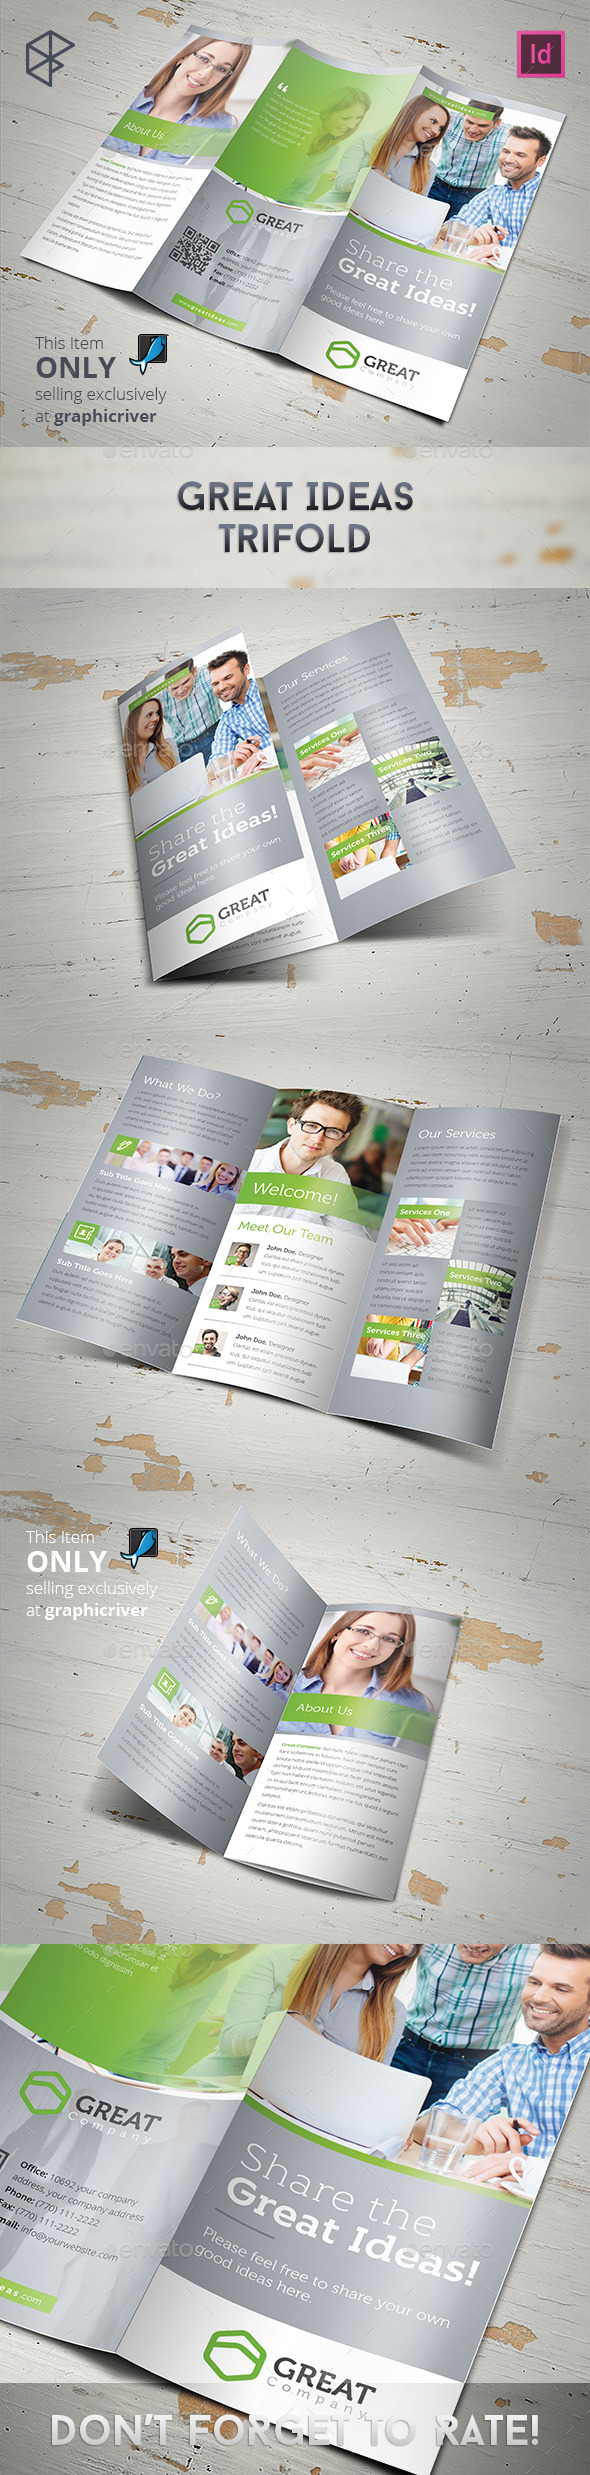 GraphicRiver Great Ideas Trifold 11101200